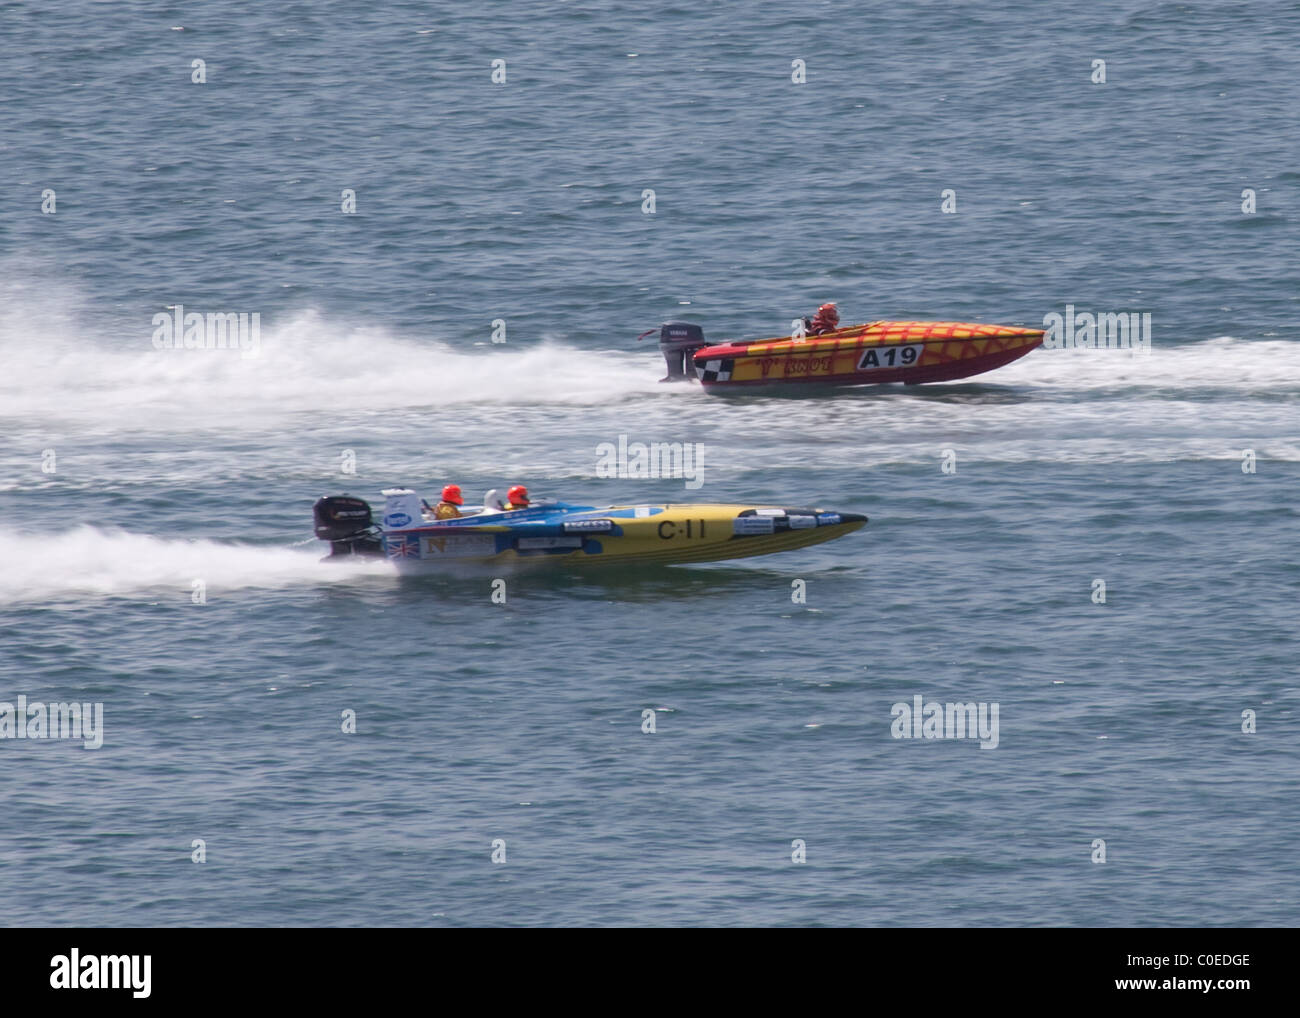 Offshore Powerboats Plymouth Sound Stock Photo: 34738718 - Alamy